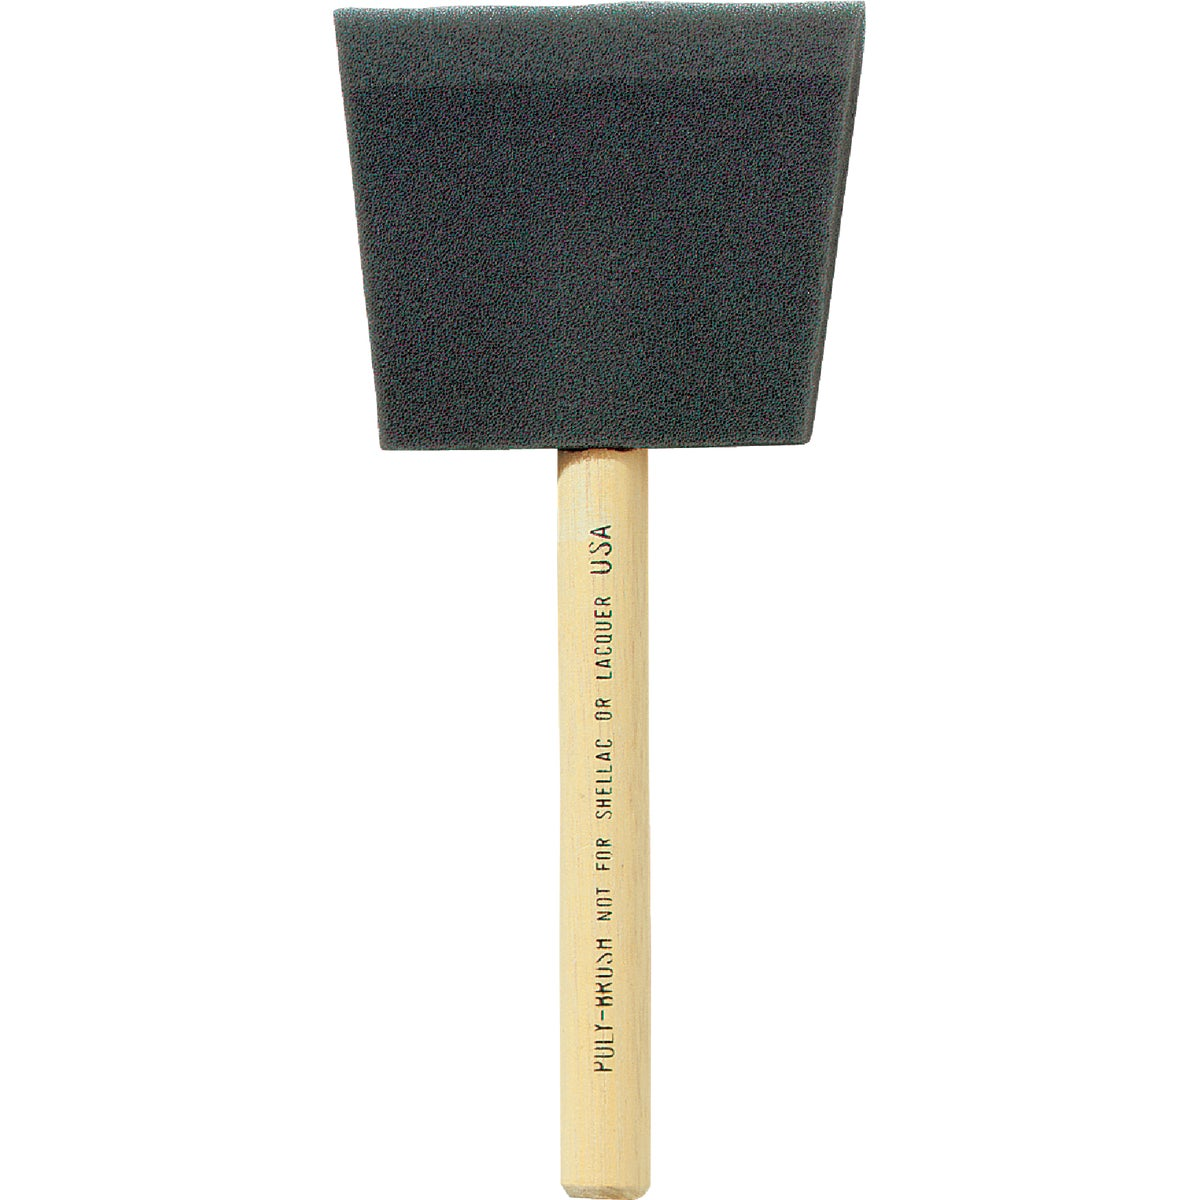 "3"" FOAM BRUSH - FOAM BRUSH by Jen Mfg Inc"